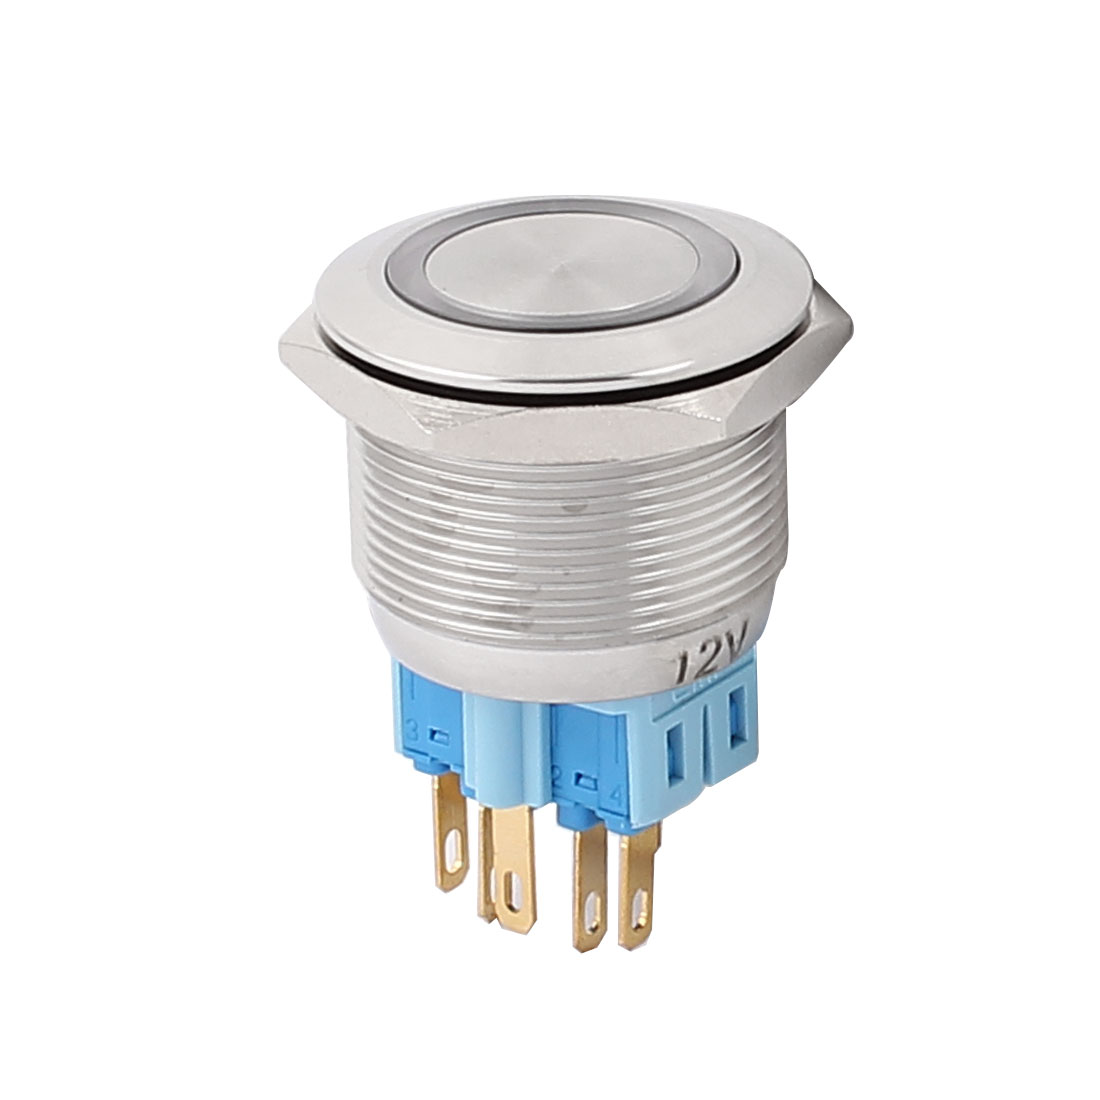 12V 25mm Dia Thread White LED Angle Eyes Momentary Metal Pushbutton Switch